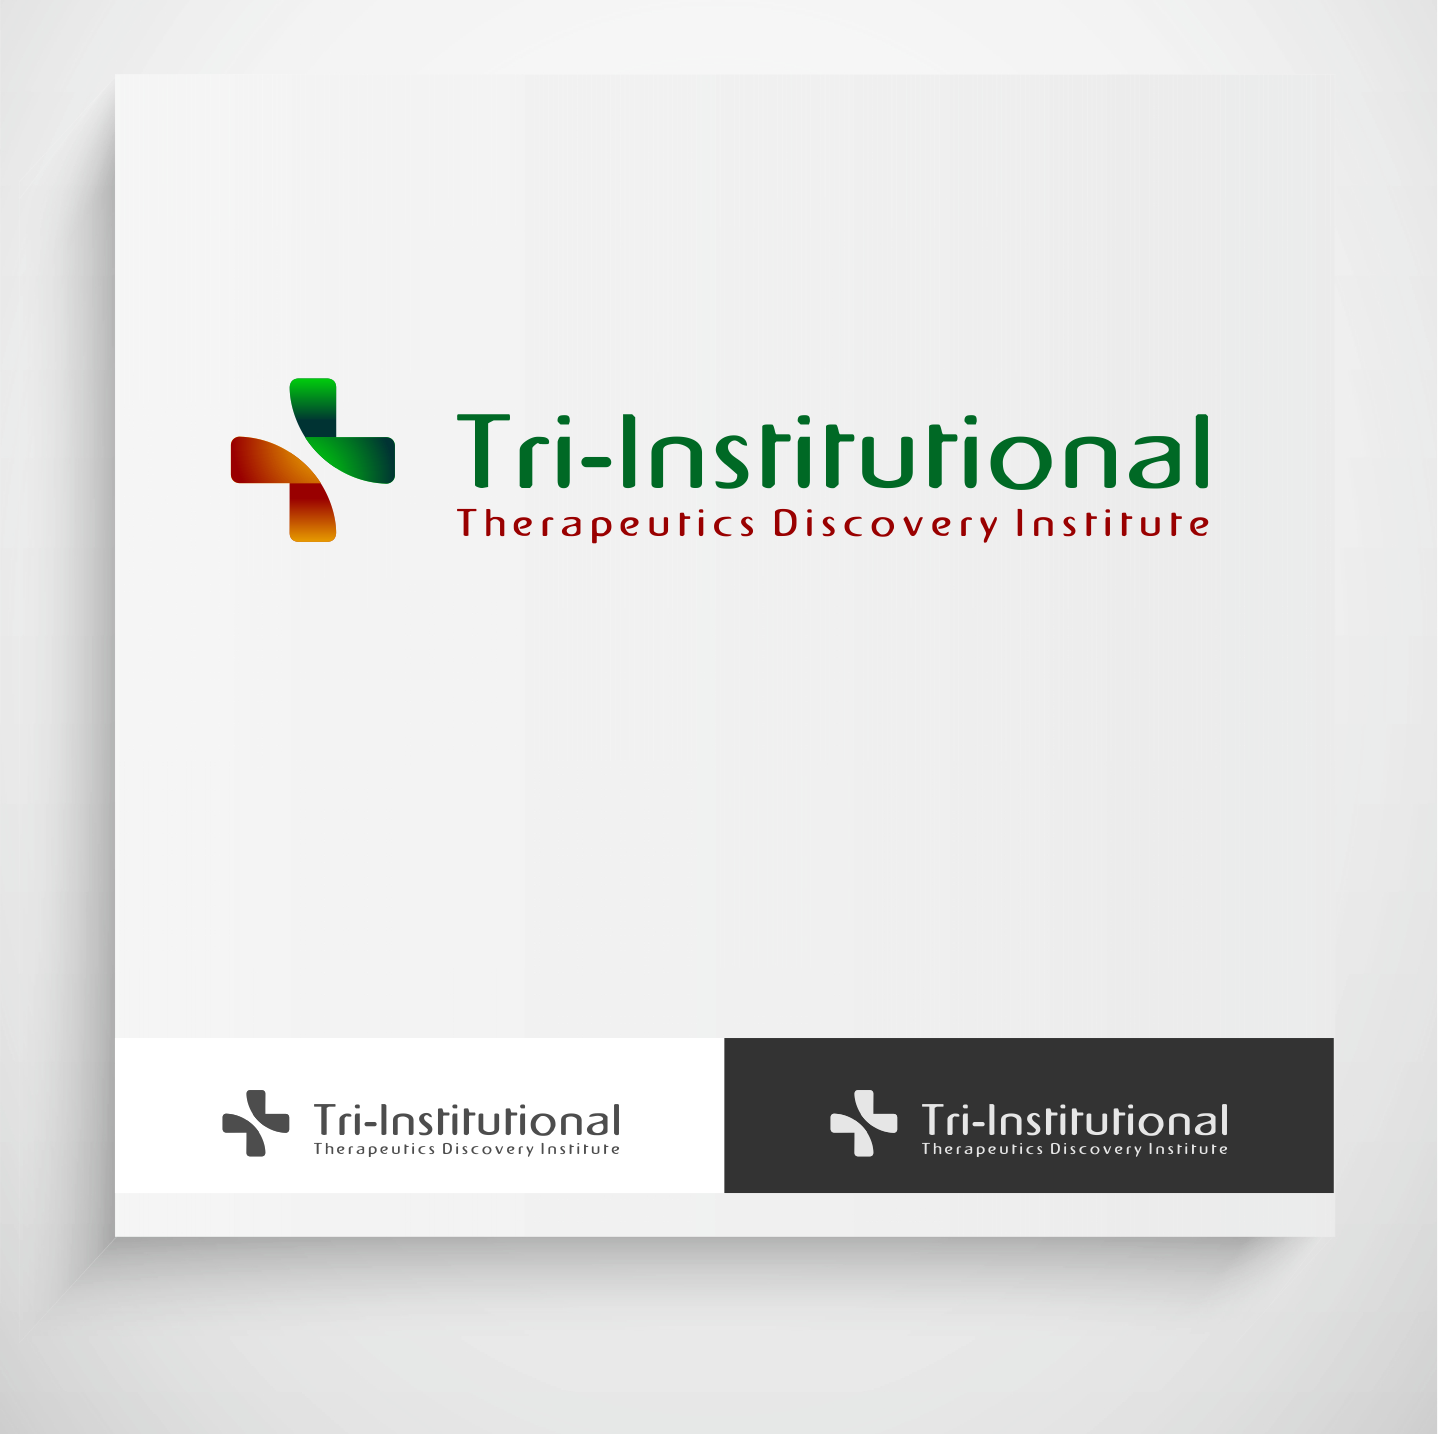 Logo Design by Krzysztof Mokanek - Entry No. 75 in the Logo Design Contest Inspiring Logo Design for Tri-Institutional Therapeutics Discovery Institute.